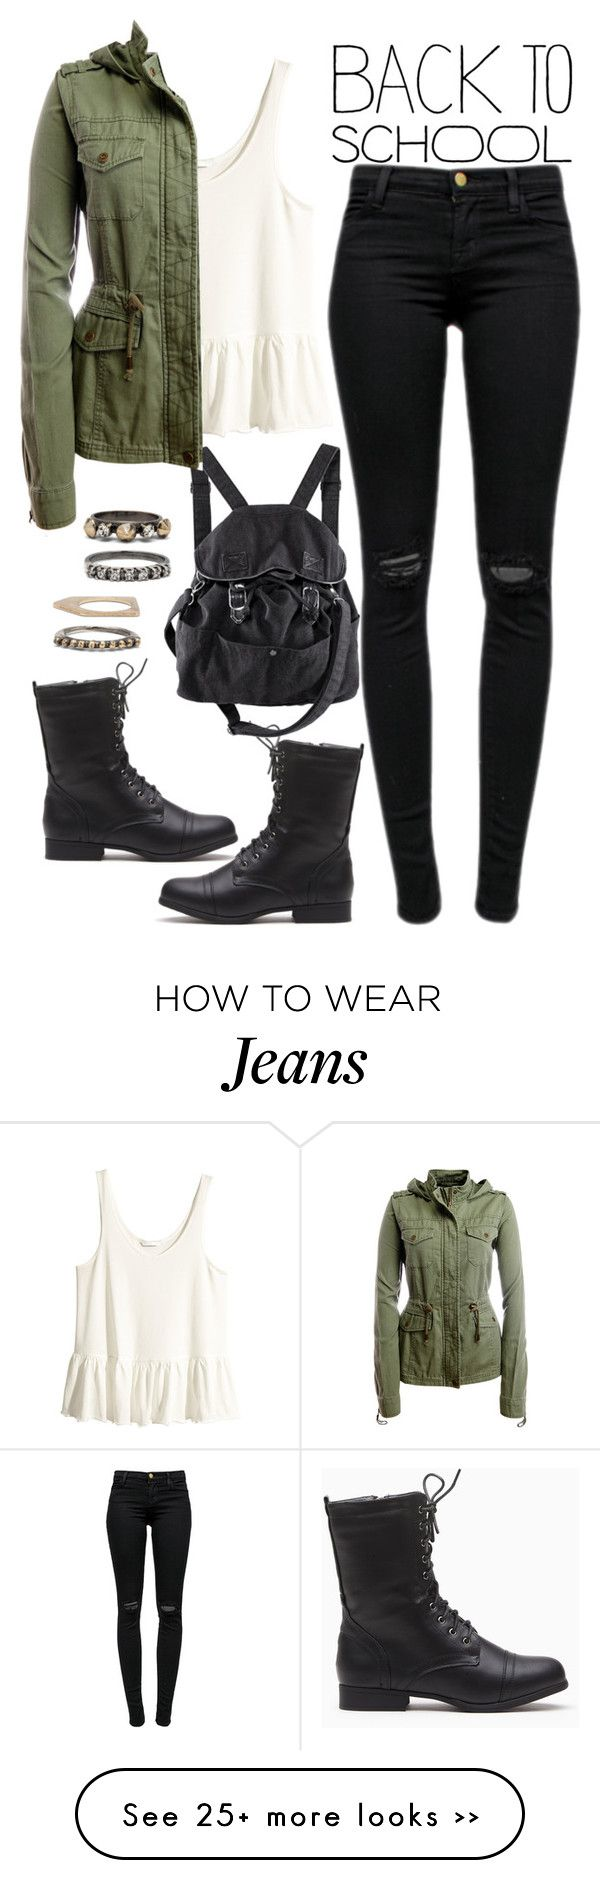 """""""905."""" by adc421 on Polyvore featuring H&M, J Brand, Aéropostale, Iosselliani, BackToSchool and falljackets"""